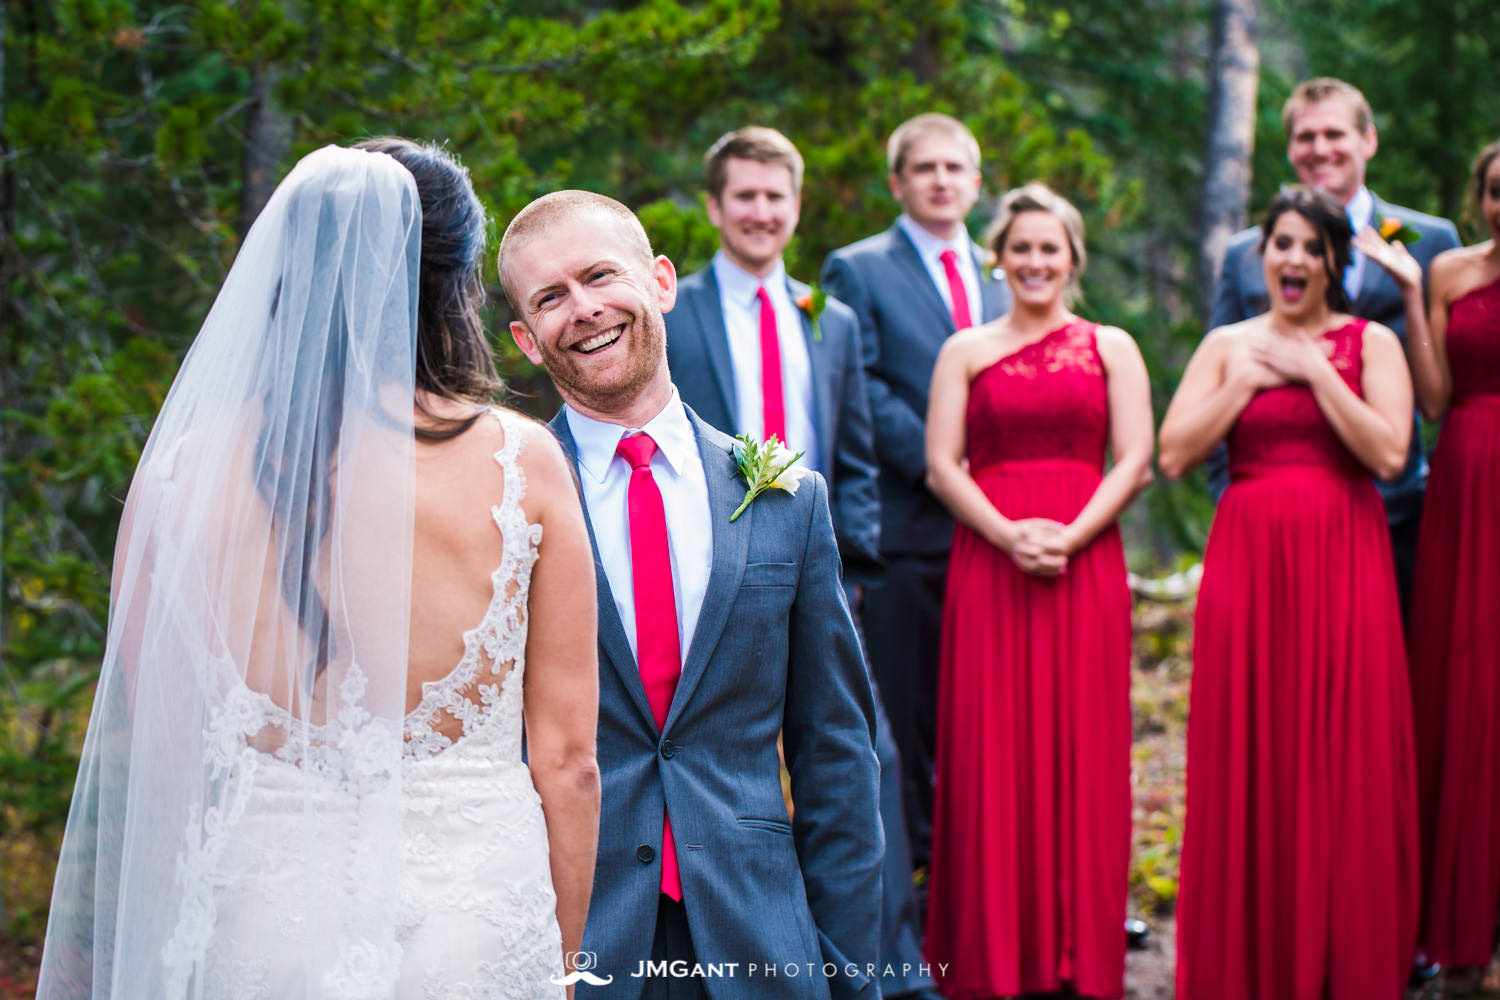 Piney River Ranch wedding | Vail Colorado wedding photographer | © JMGant Photography | http://www.jmgantphotography.com/